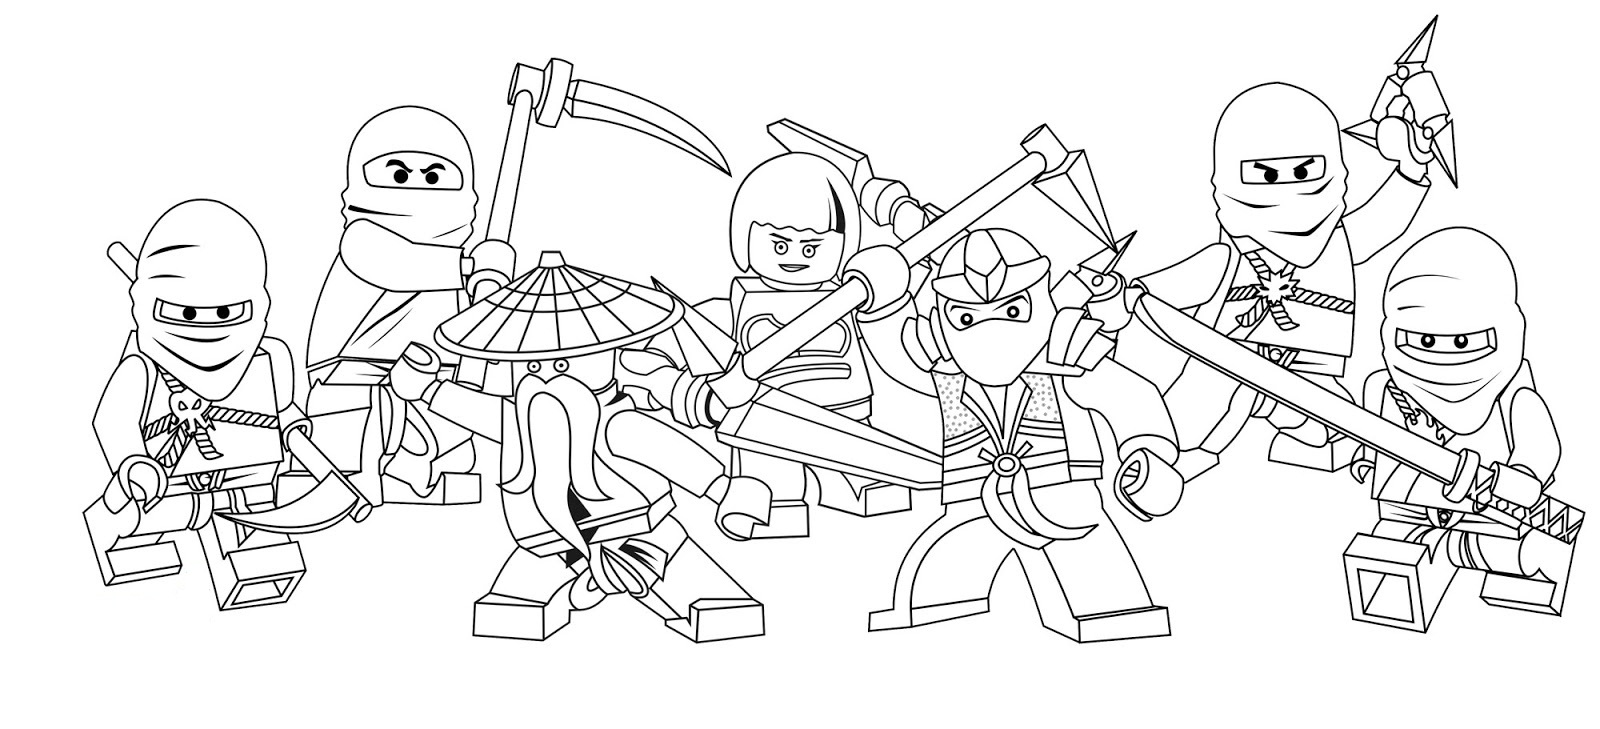 Free printable ninjago coloring pages for kids for Coloring pages of ninjas